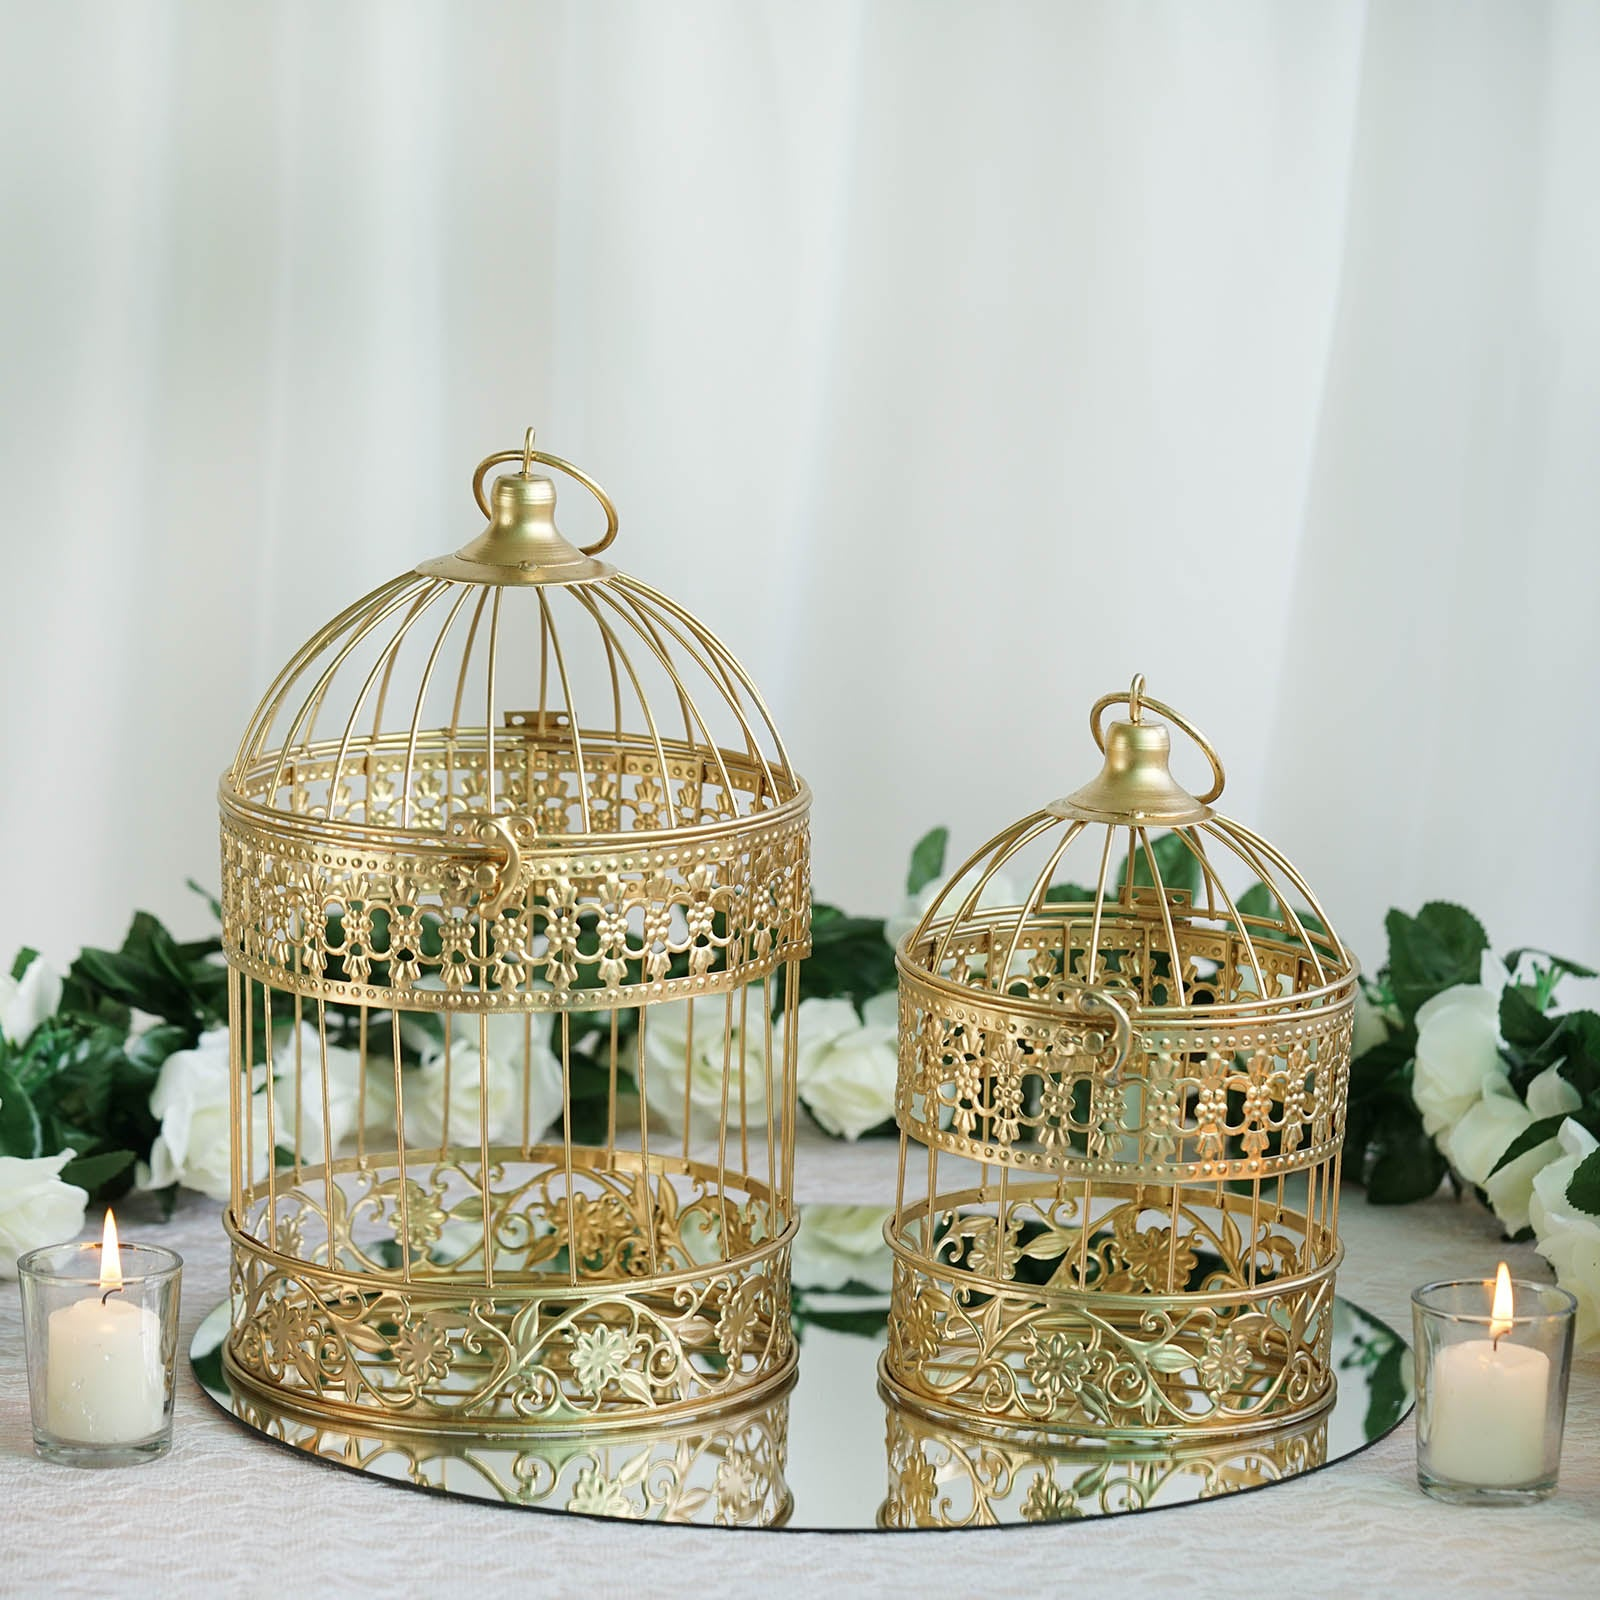 2 Sets Of Large Metallic Gold Bird Cage Wedding Card Holder ...